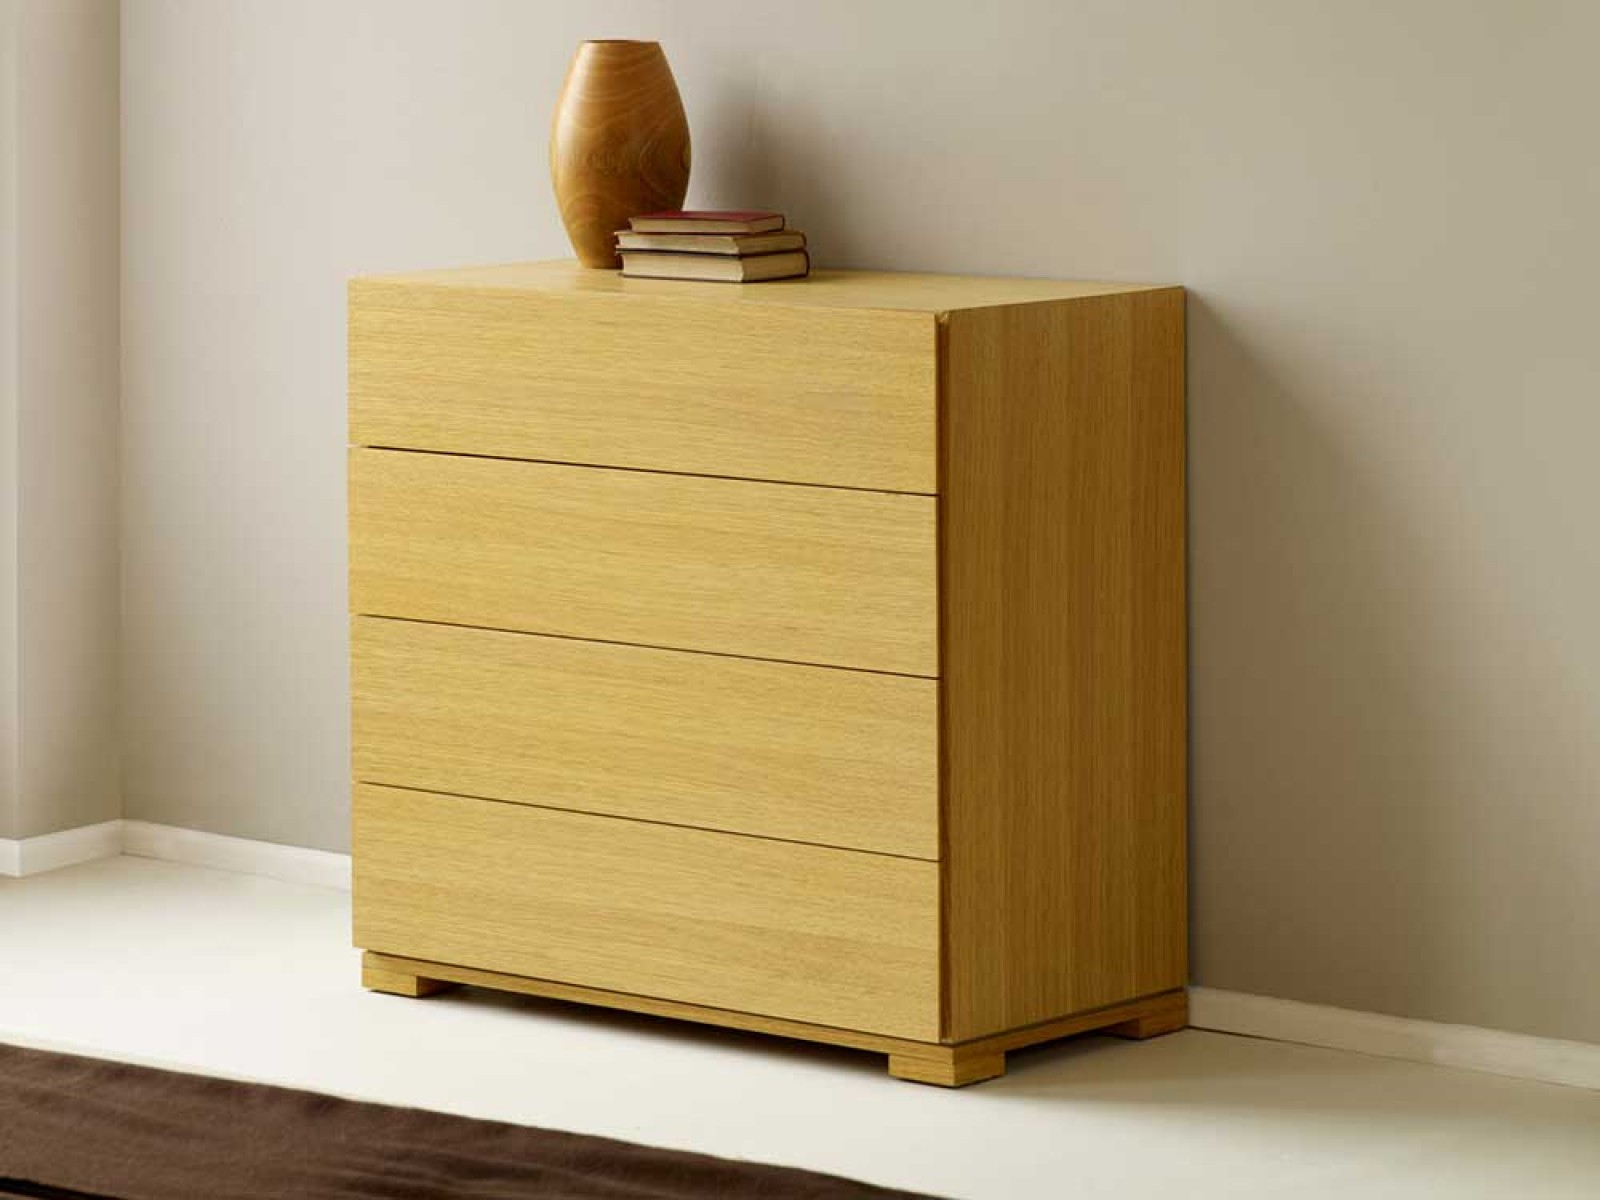 Unique Furniture Design Cabinet with 4 Drawer Dresser for Bedroom Ideas: Simple Drawers 4 Drawer Dresser And Rug